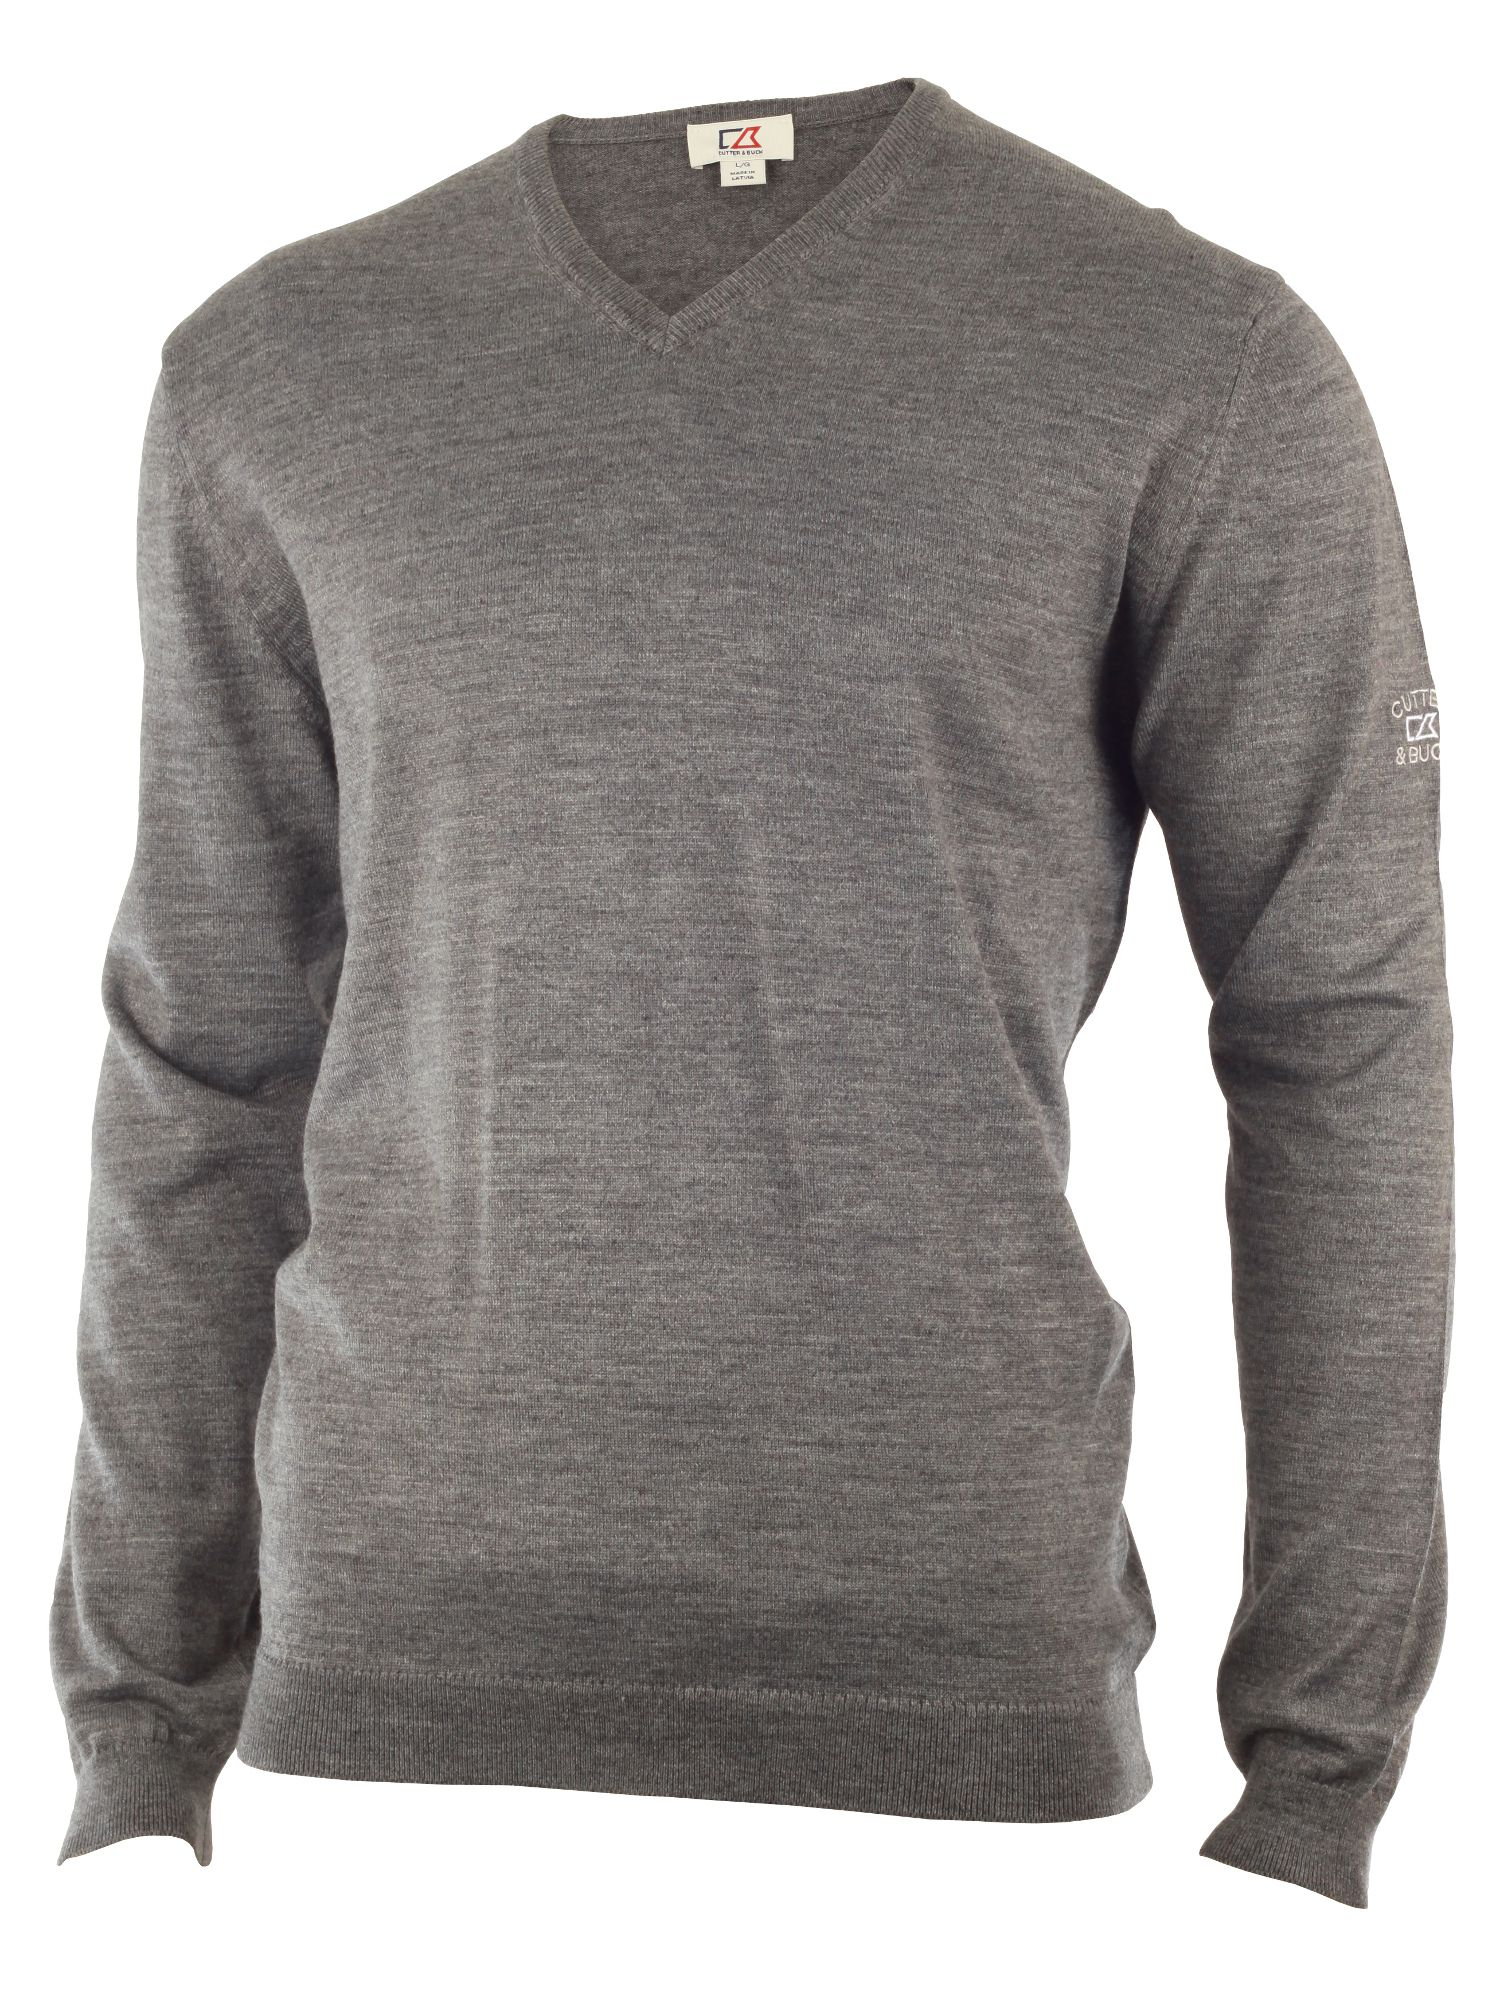 Cutter and Buck Men's Cutter and Buck Merino v neck sweater, Grey